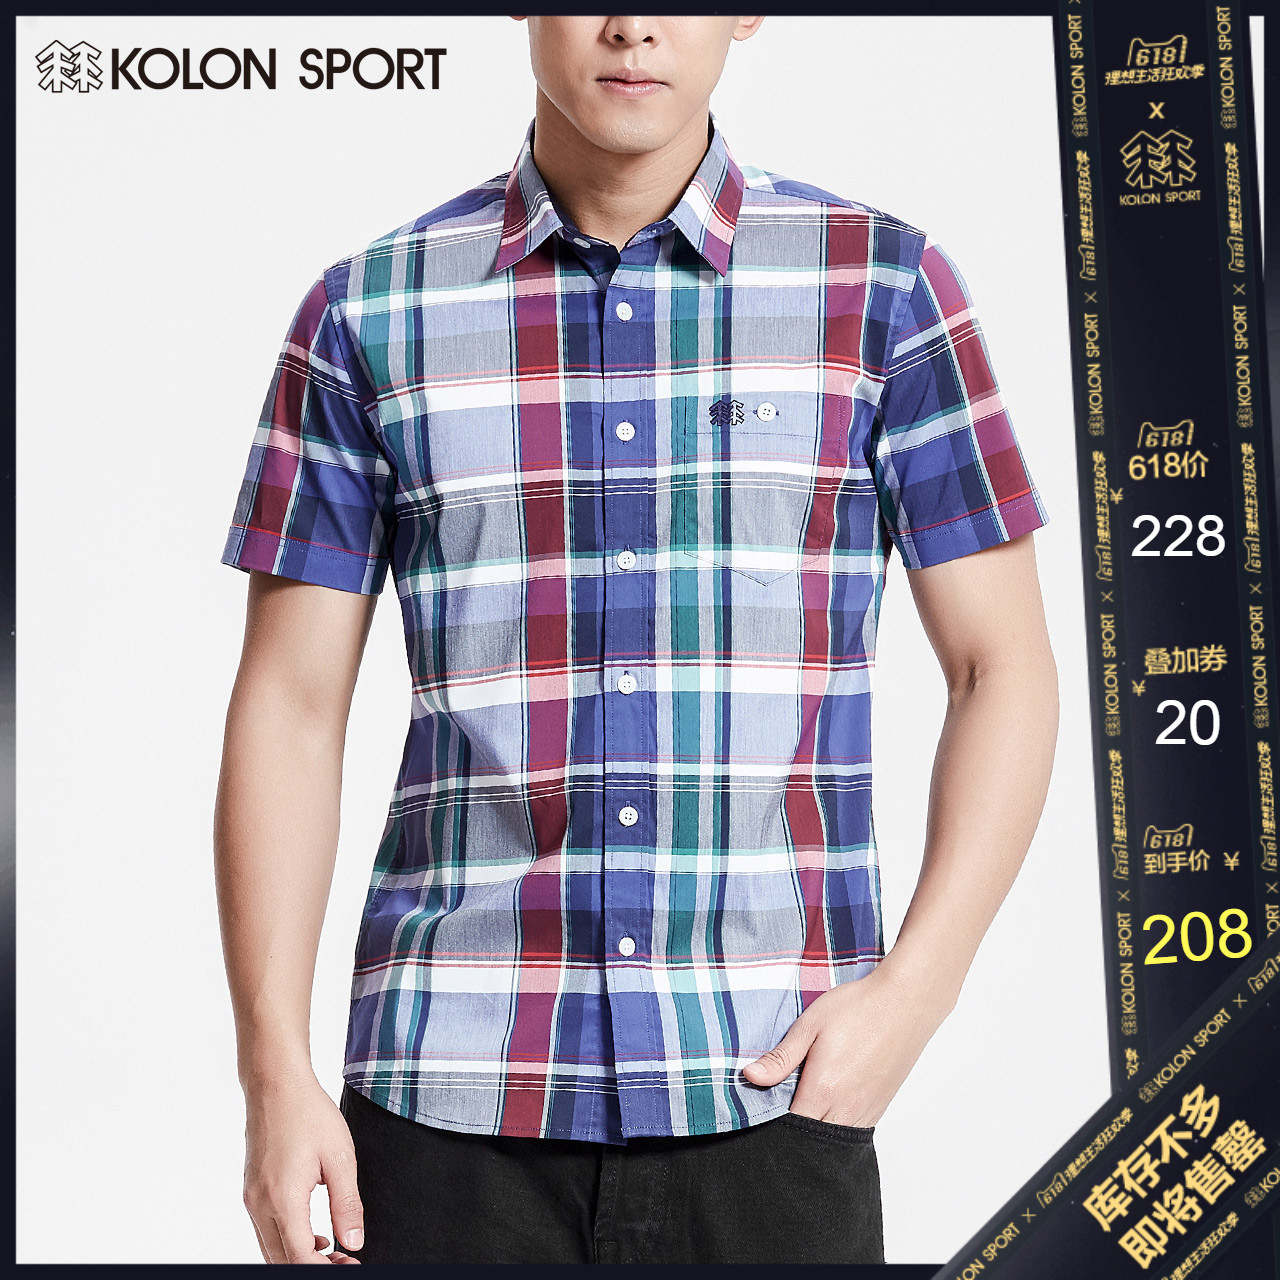 KOLONSPORT Klong shirt Summer men's casual and comfortable breathable slim plaid shirt LHBM63031